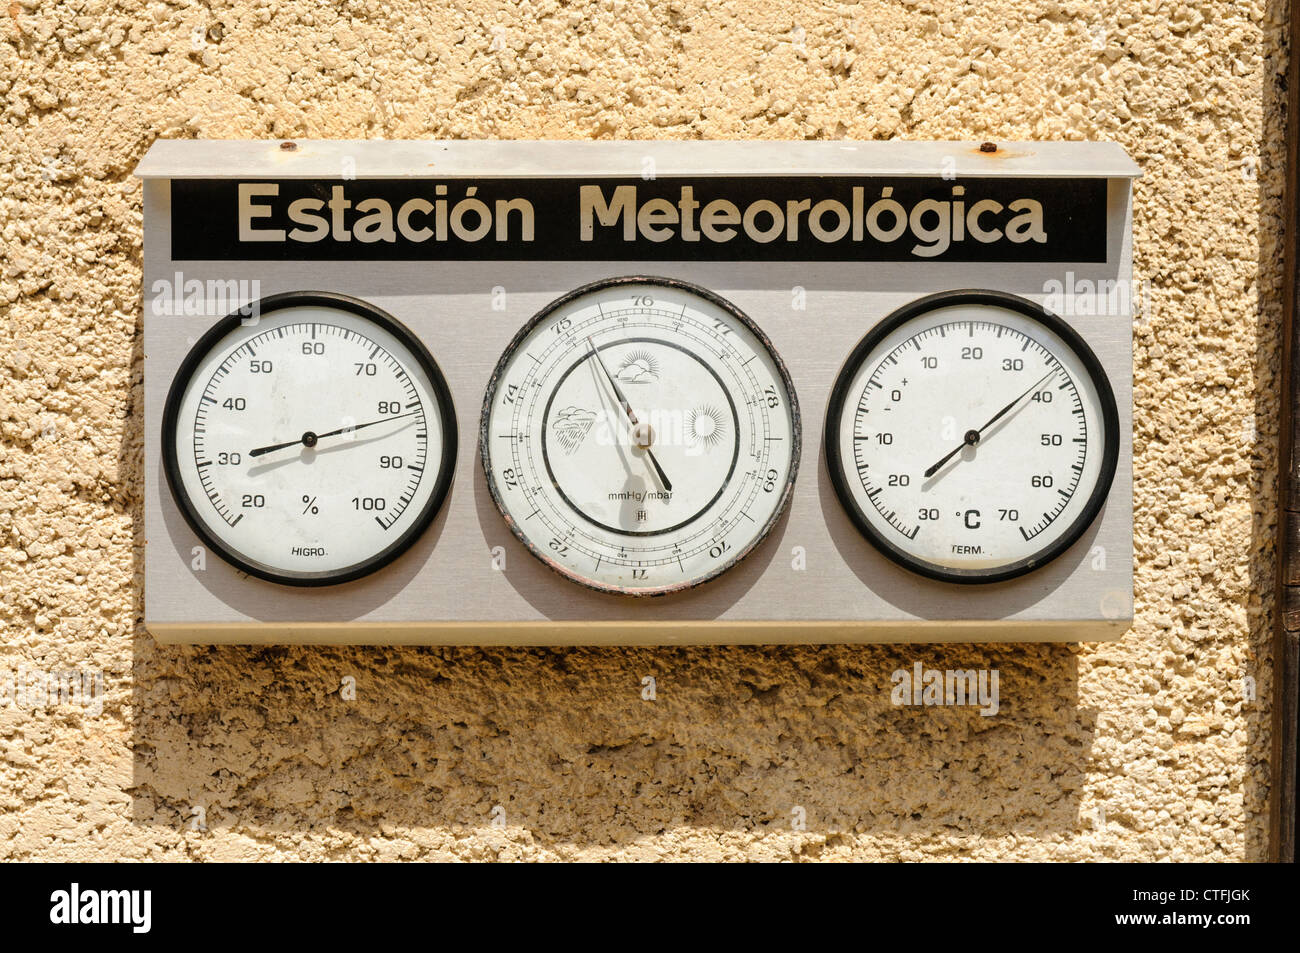 Spanish weather station 'Estación meterológica' - Stock Image